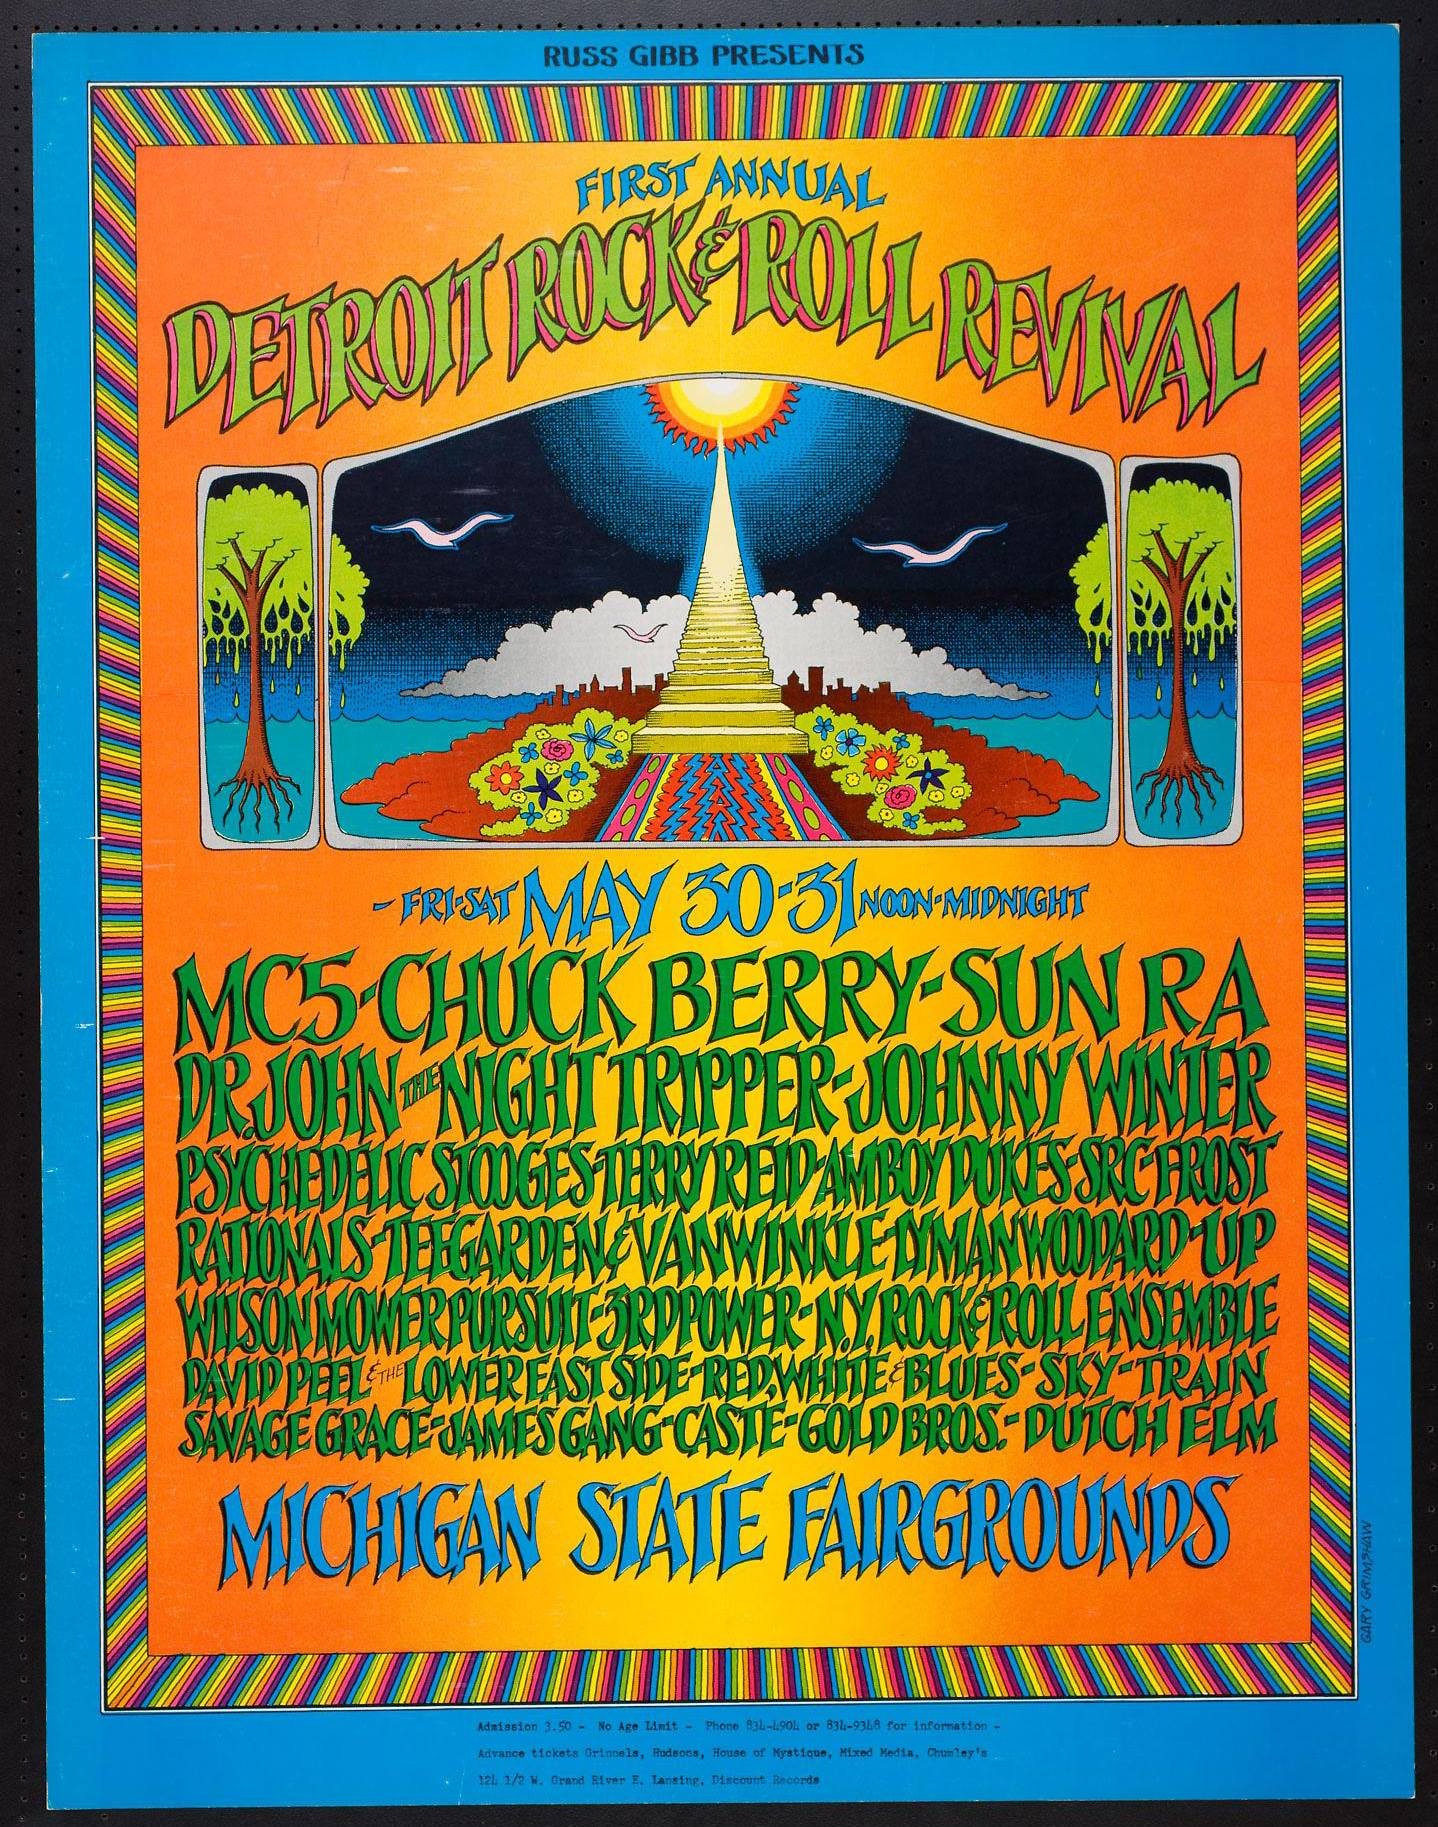 The First Annual Detroit Rock & Roll Revival, Detroit, Michigan State Fairgrounds May 30-31, 1969